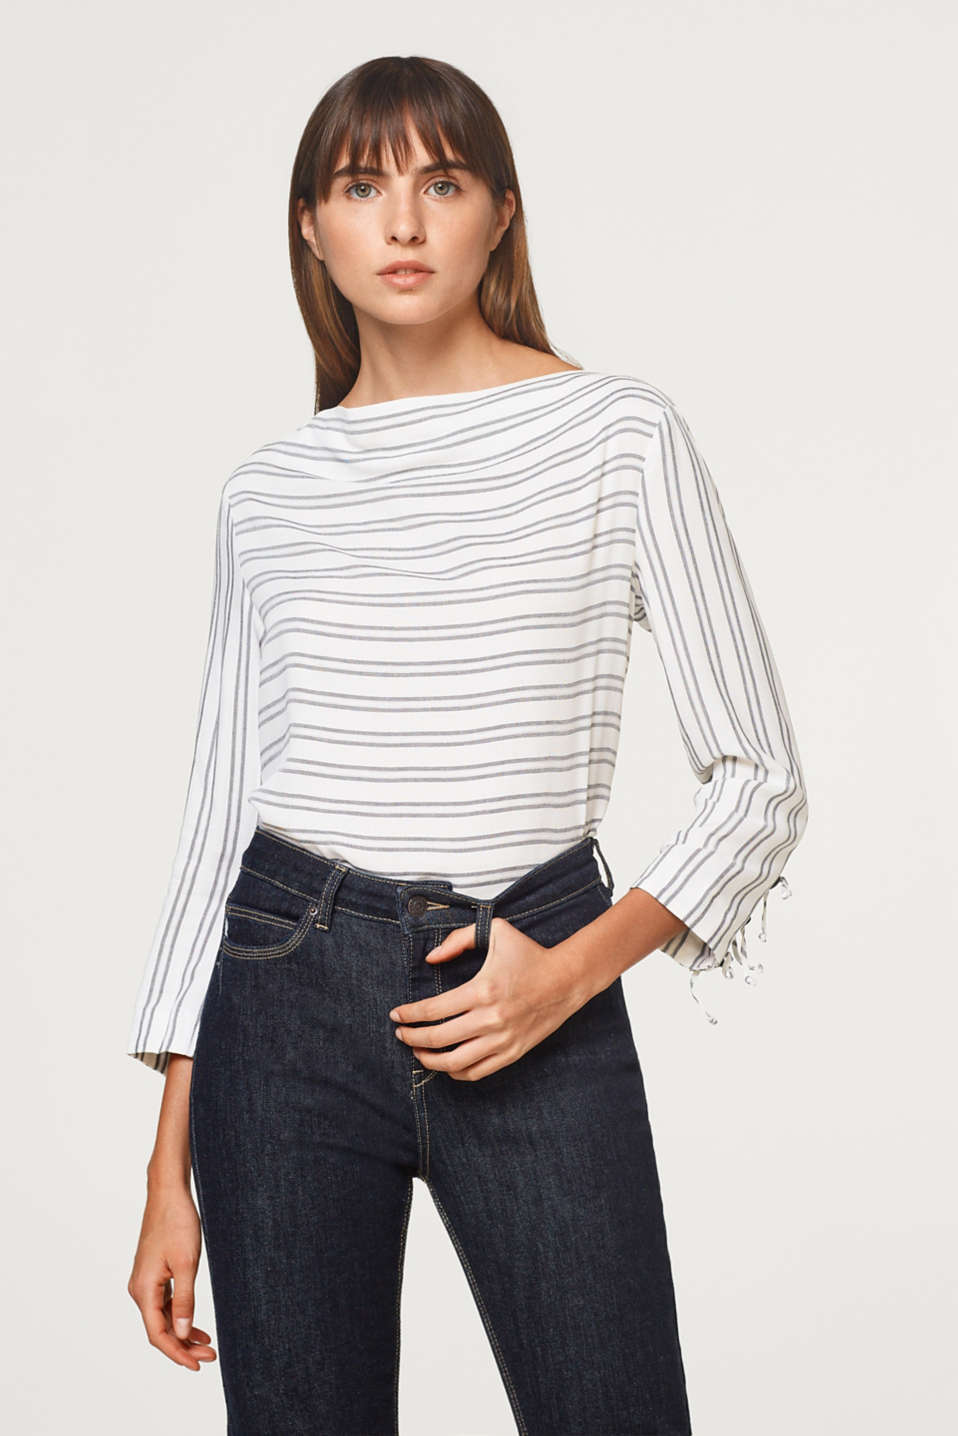 Esprit - Striped blouse with decorative buttons